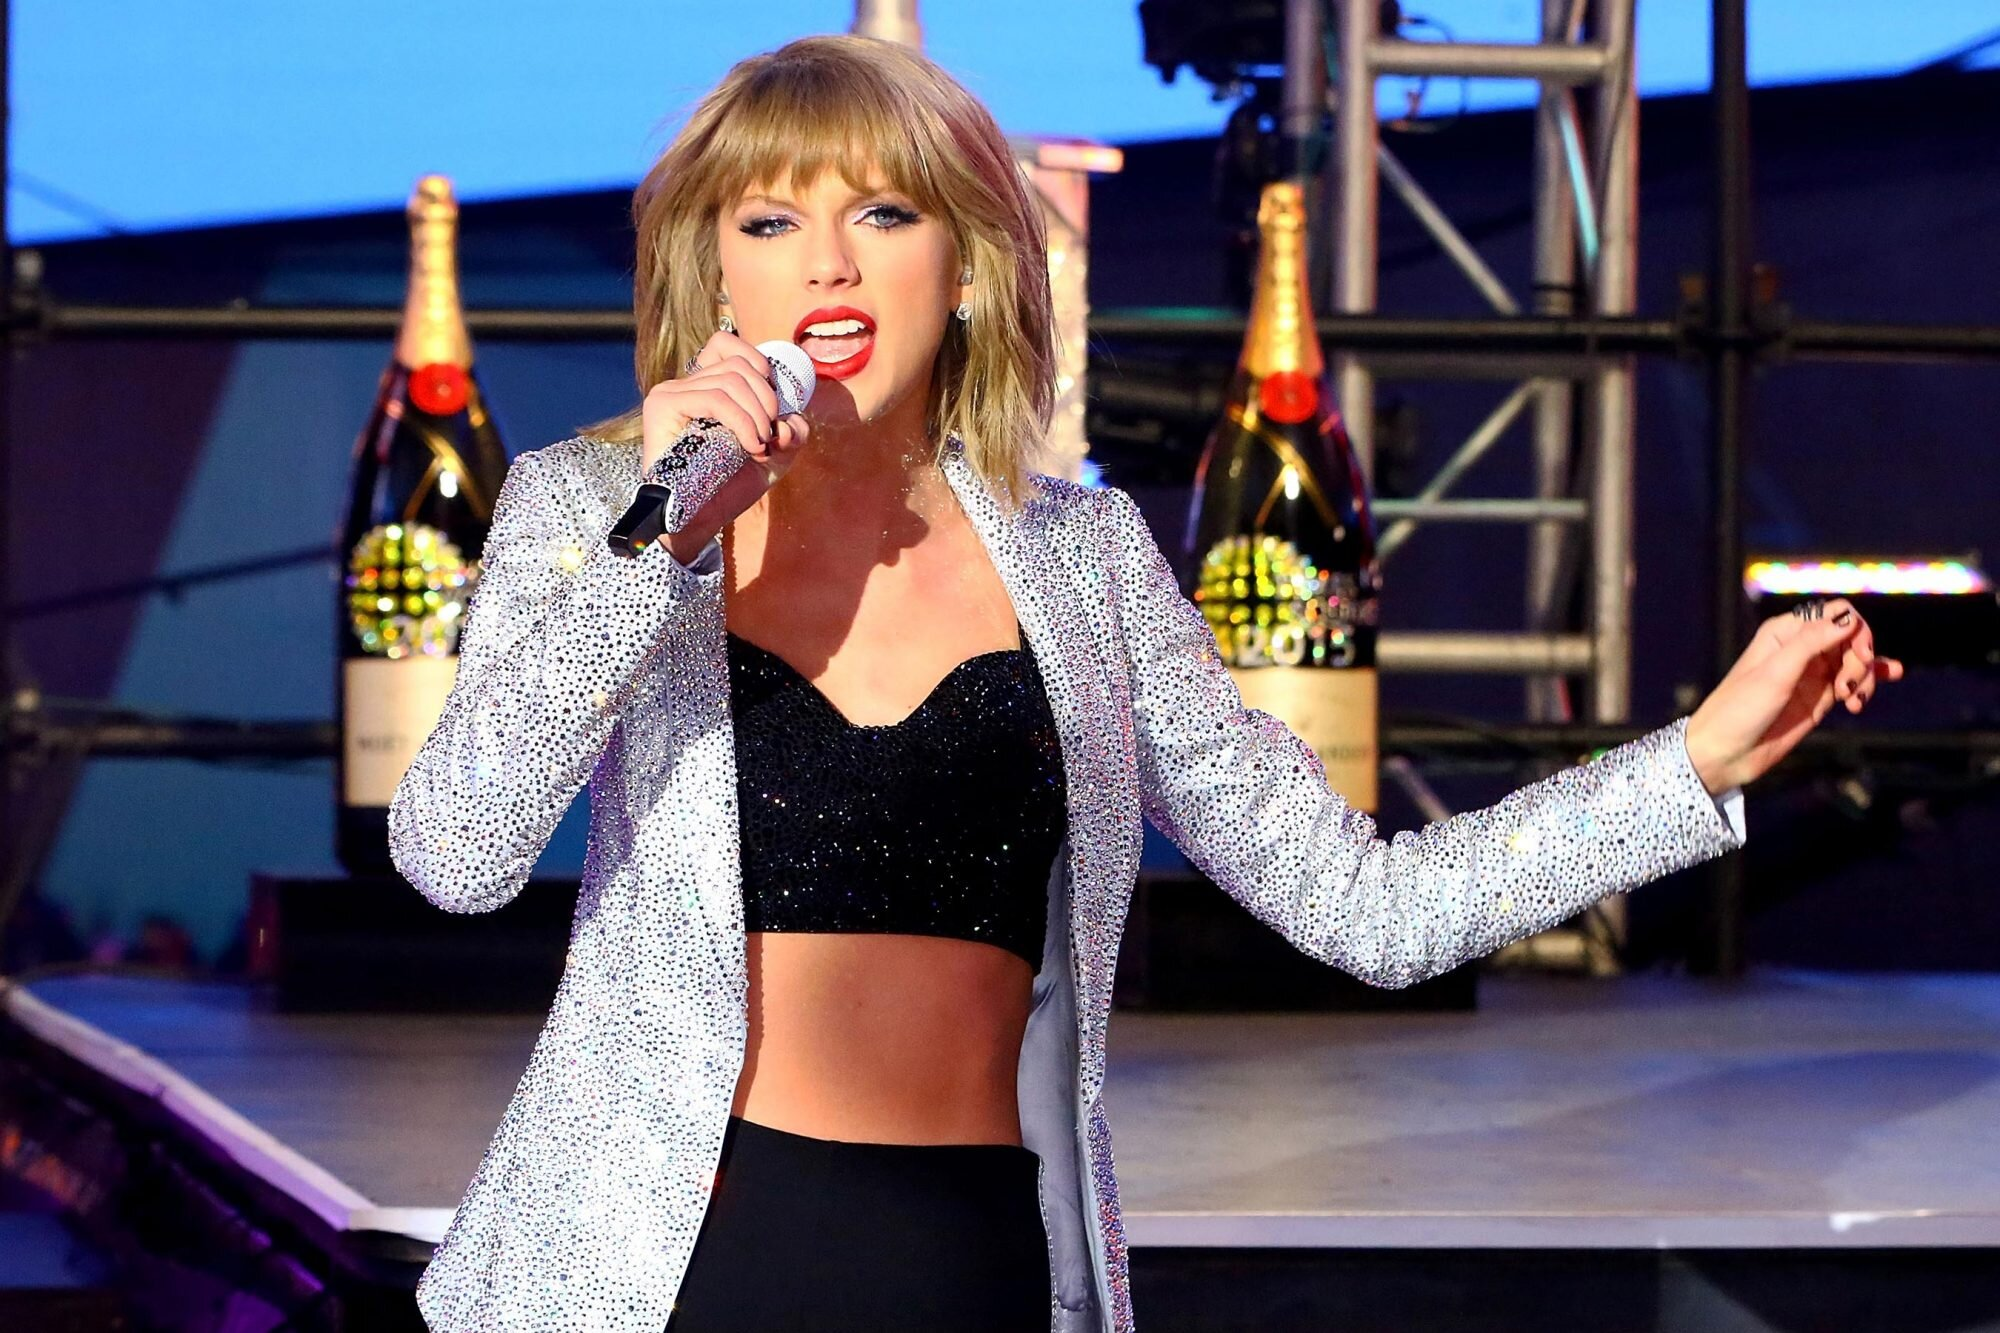 Taylor Swift S Reputation How To Drink Like The Singer Ew Com